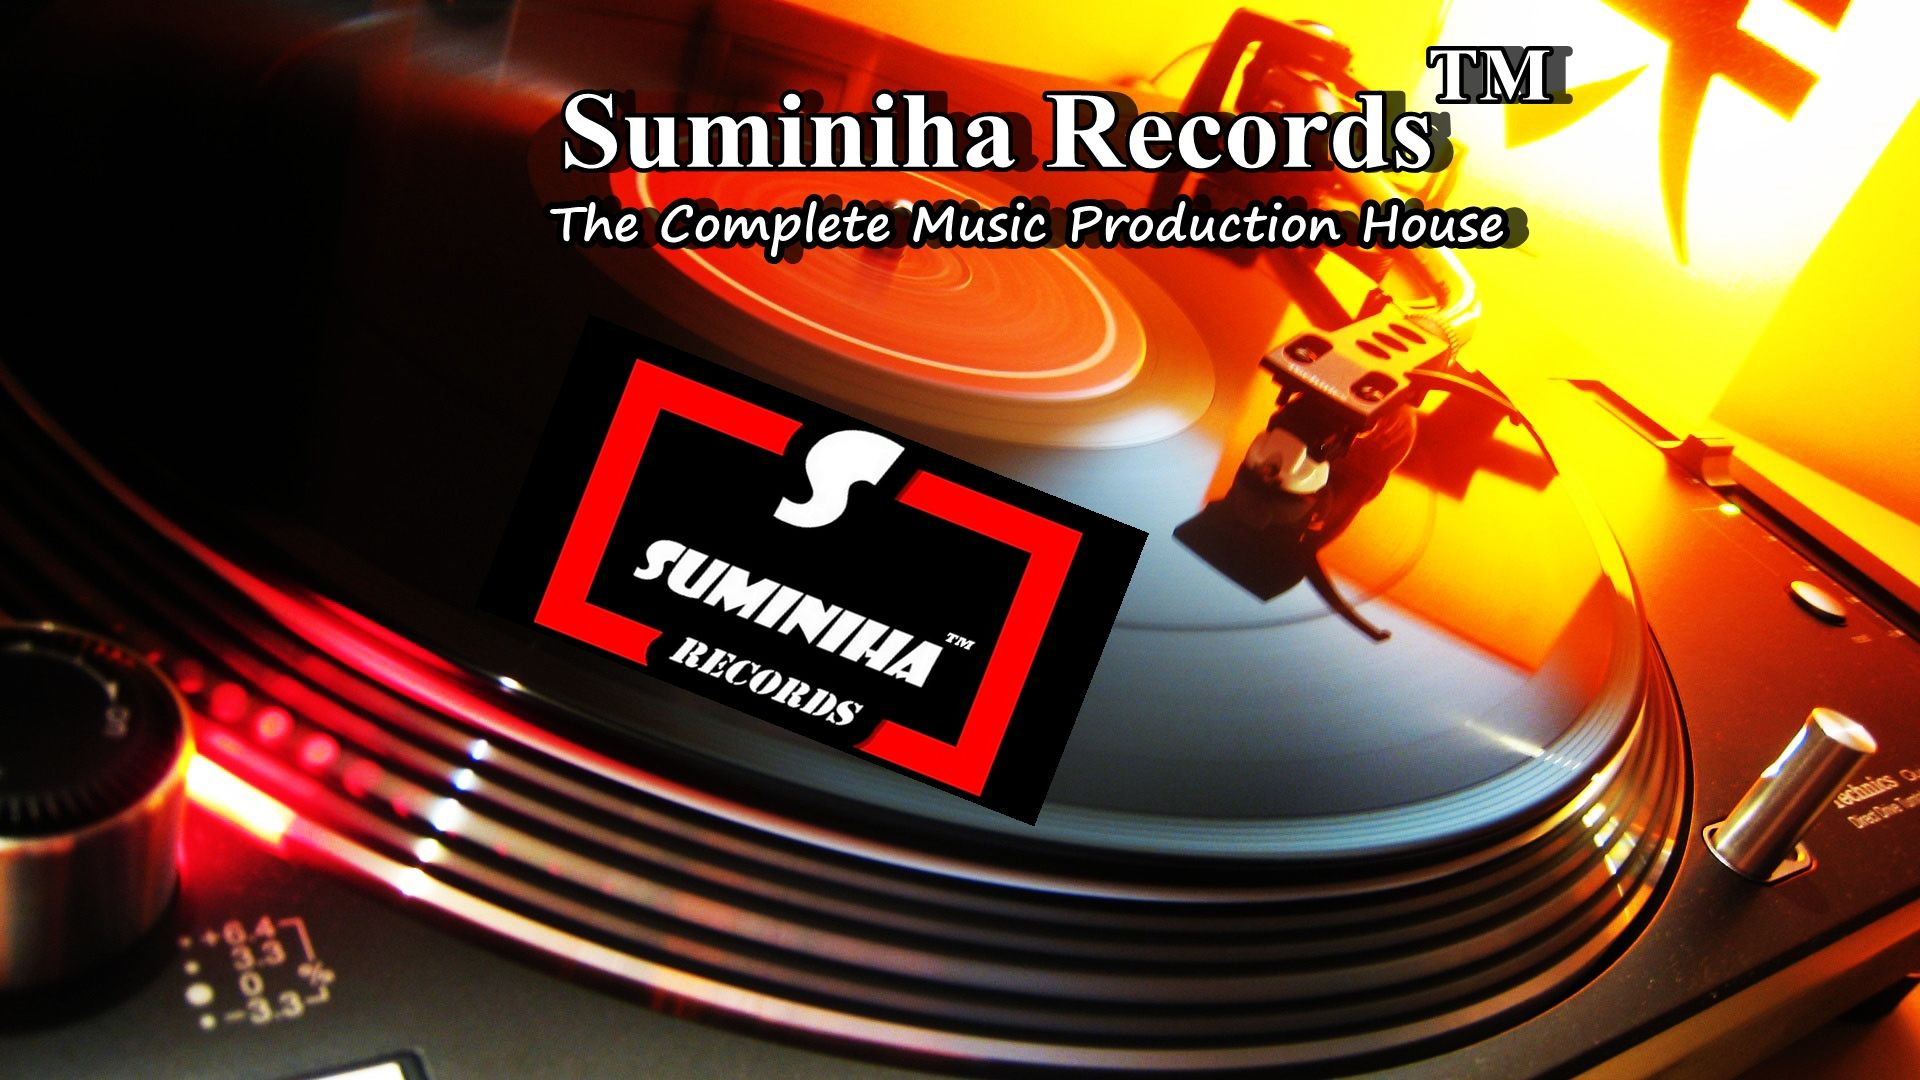 09711603597  01142532047  The Complete Music Production House  Music Recording Studio,Record Label  Beat Making  Song Recording  Voice Over  Mixing  Mastering  Creative Advertisements  Devotional Songs  Patriotic Songs  School Songs  School Programmes  School Documentary  School Commercial Advertisement  RnB,Hip Hop,Blues,Dubstep,Progressive House,Romanian,Rock,Pop etc.  Creating the Best Music Videos in Quality HD1080p.  Audio Mixing From The best Software - Logic, Pro Tolls etc.